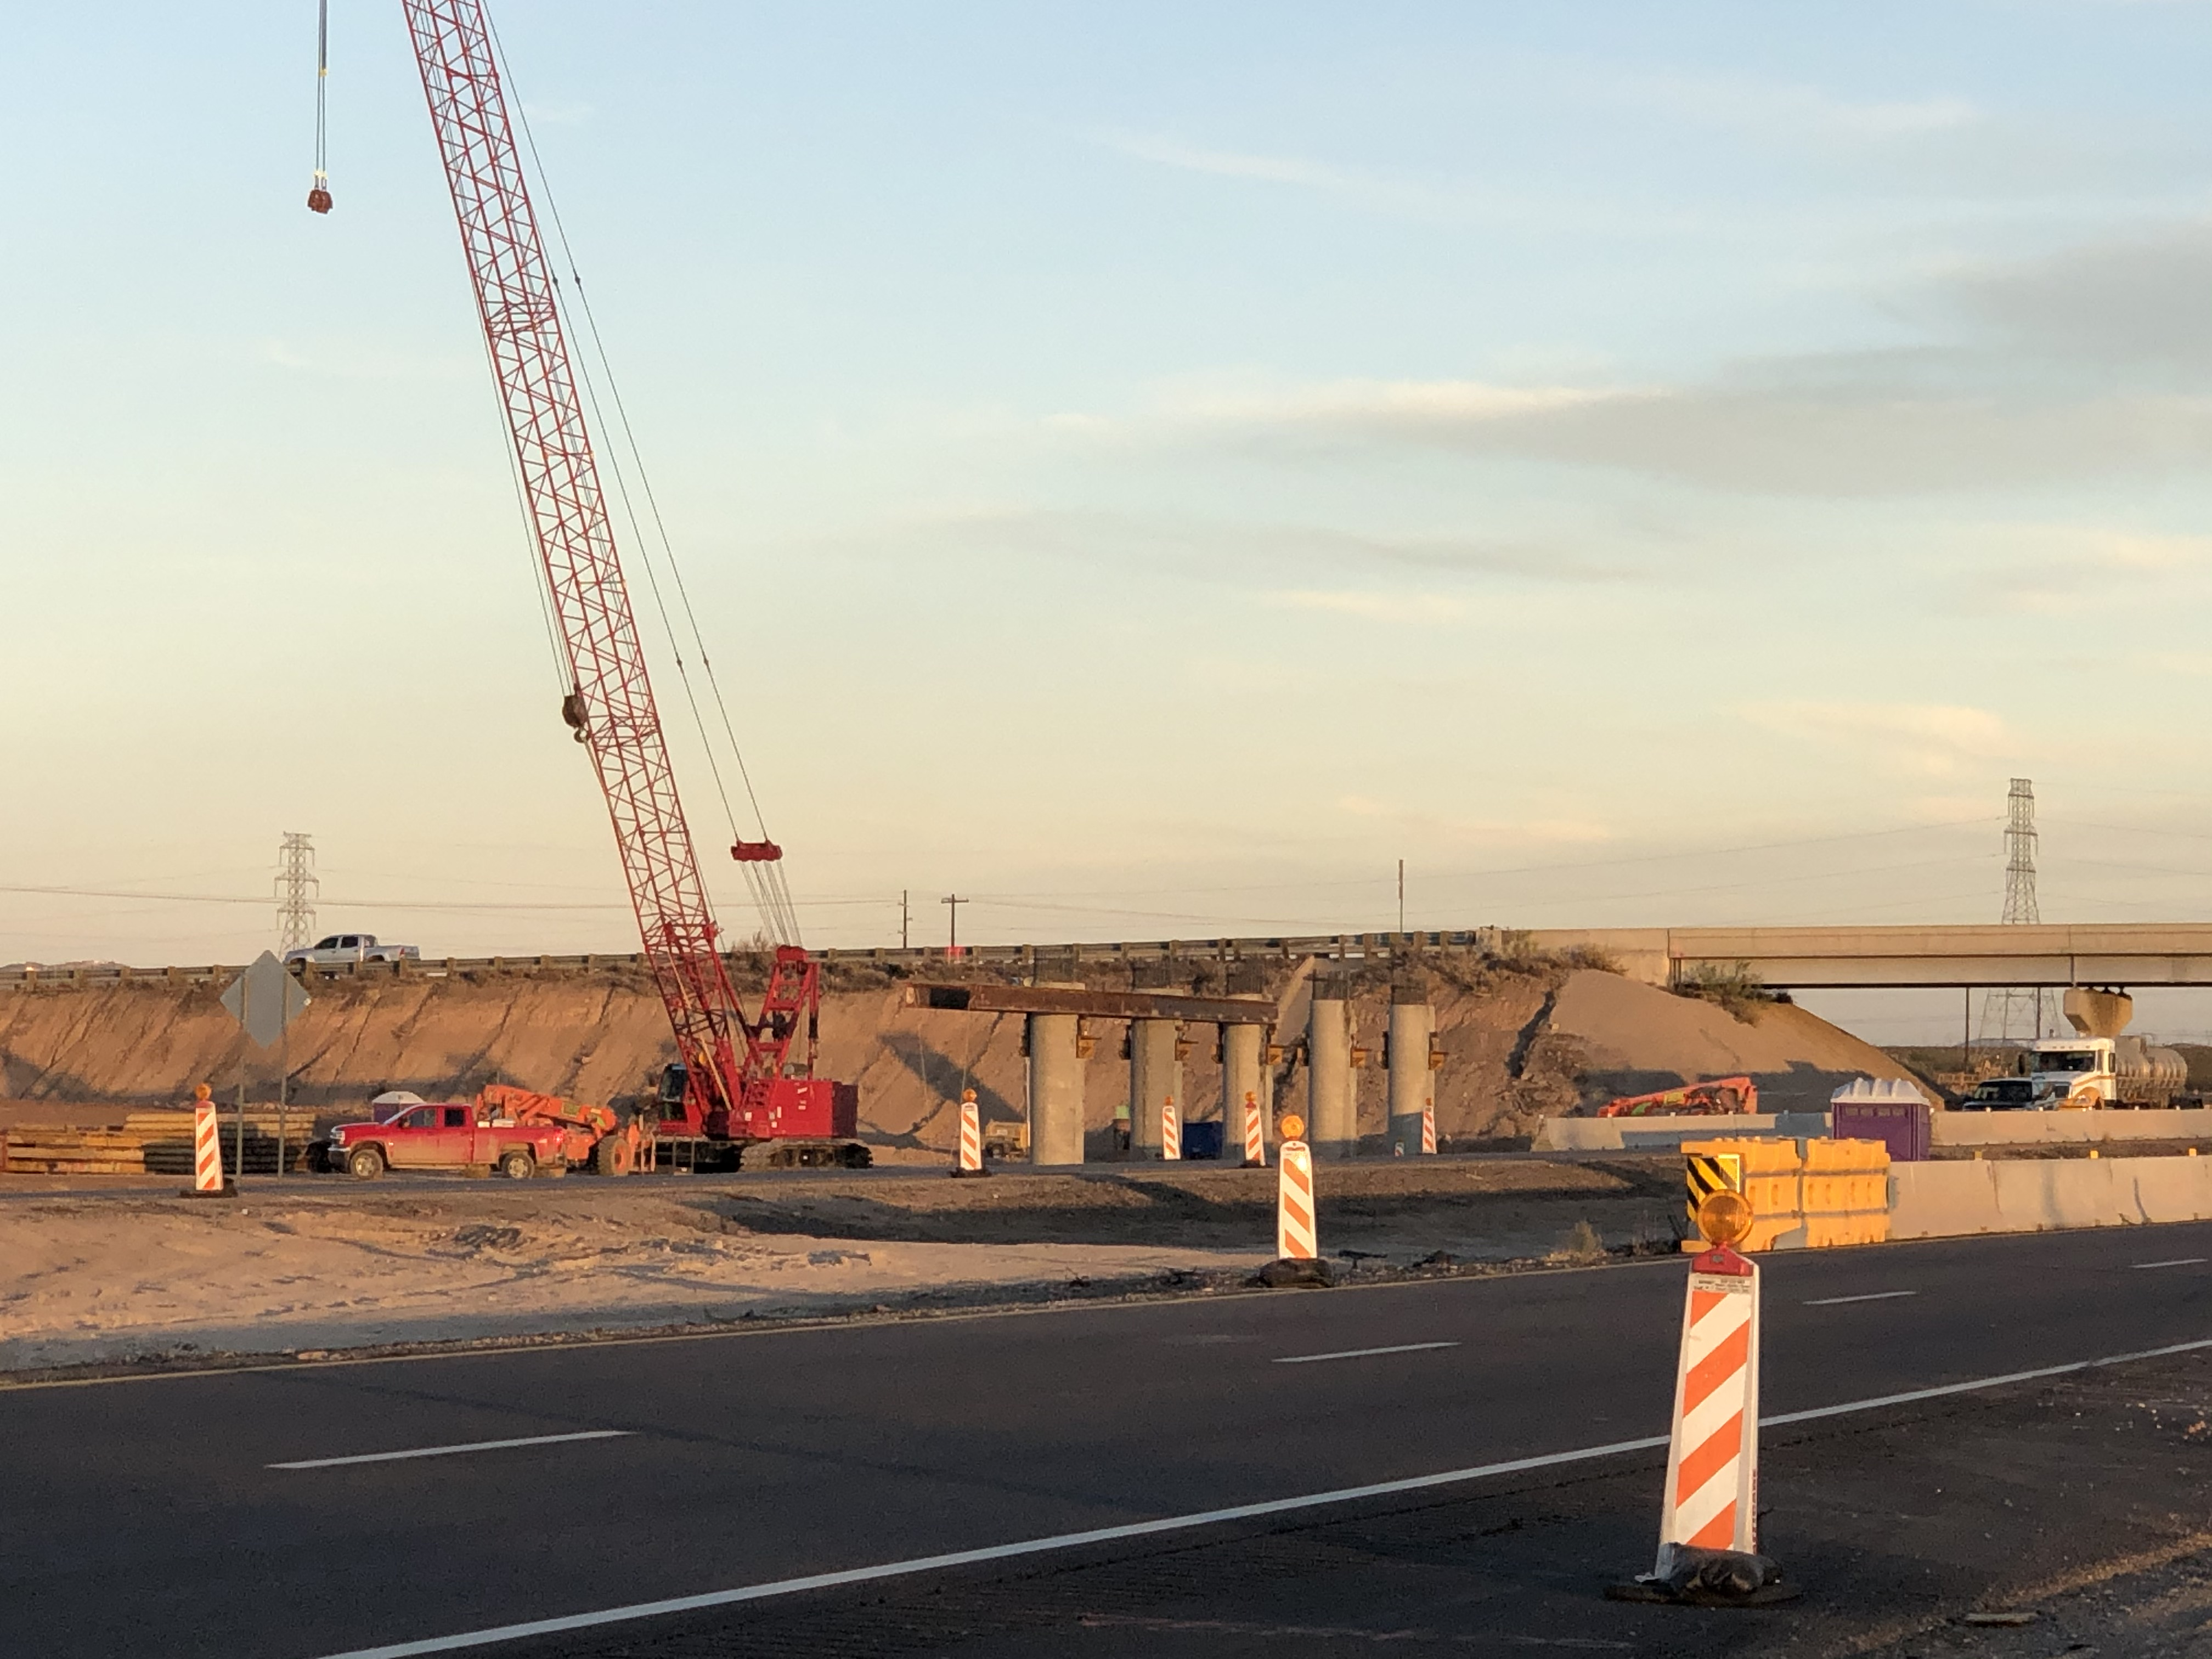 I-10 and Houghton